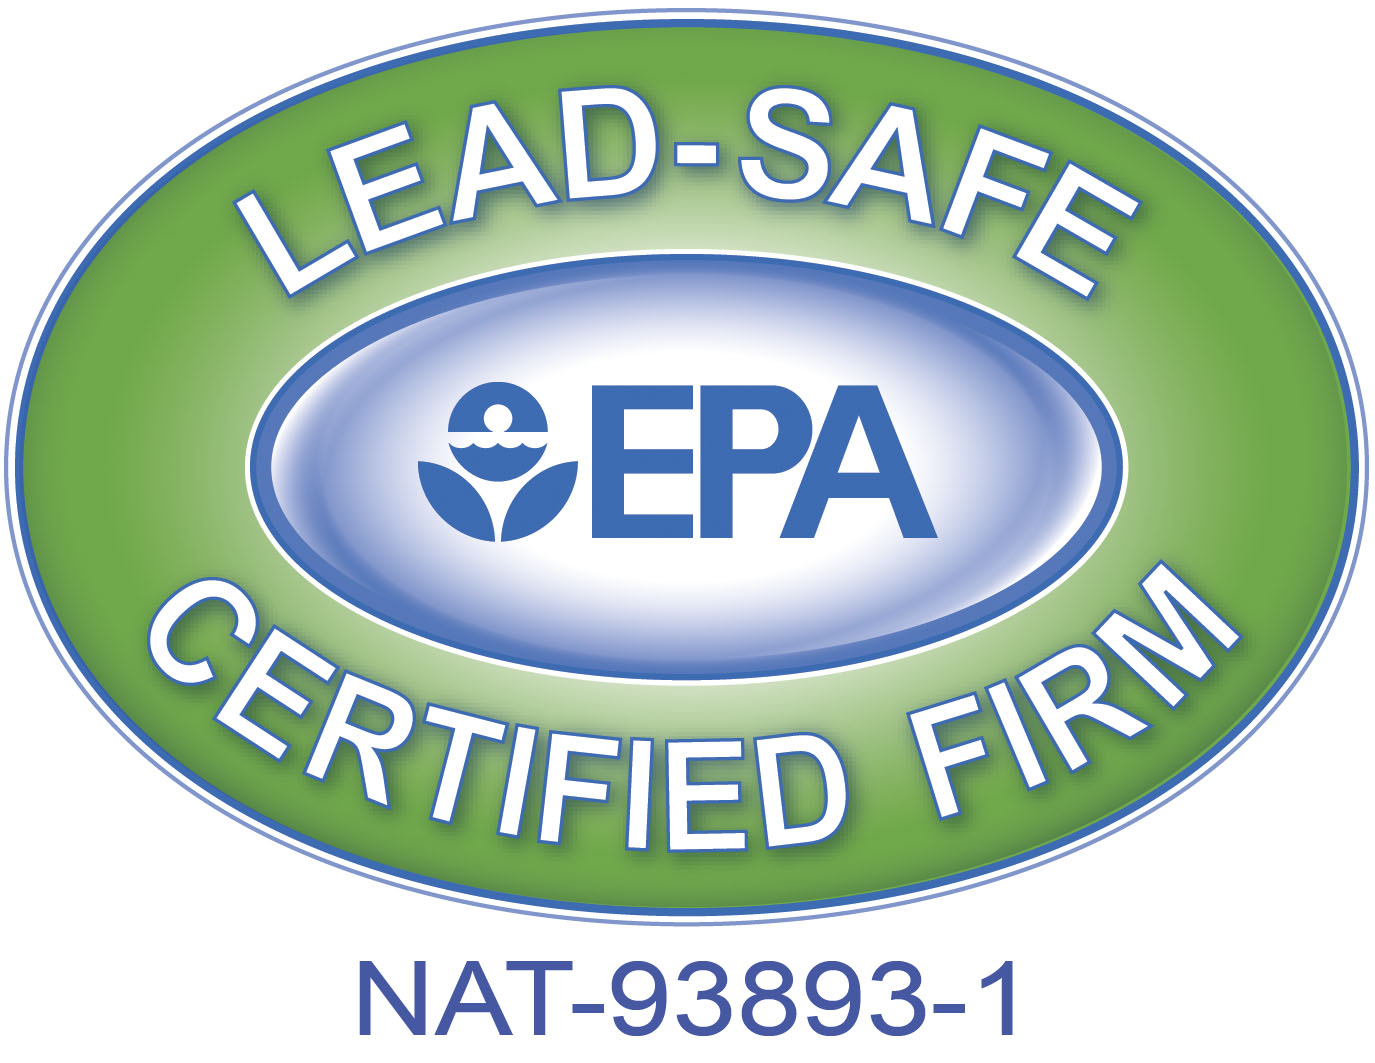 Alliance Garage Doors & Openers, LLC is a certified lead-safe firm